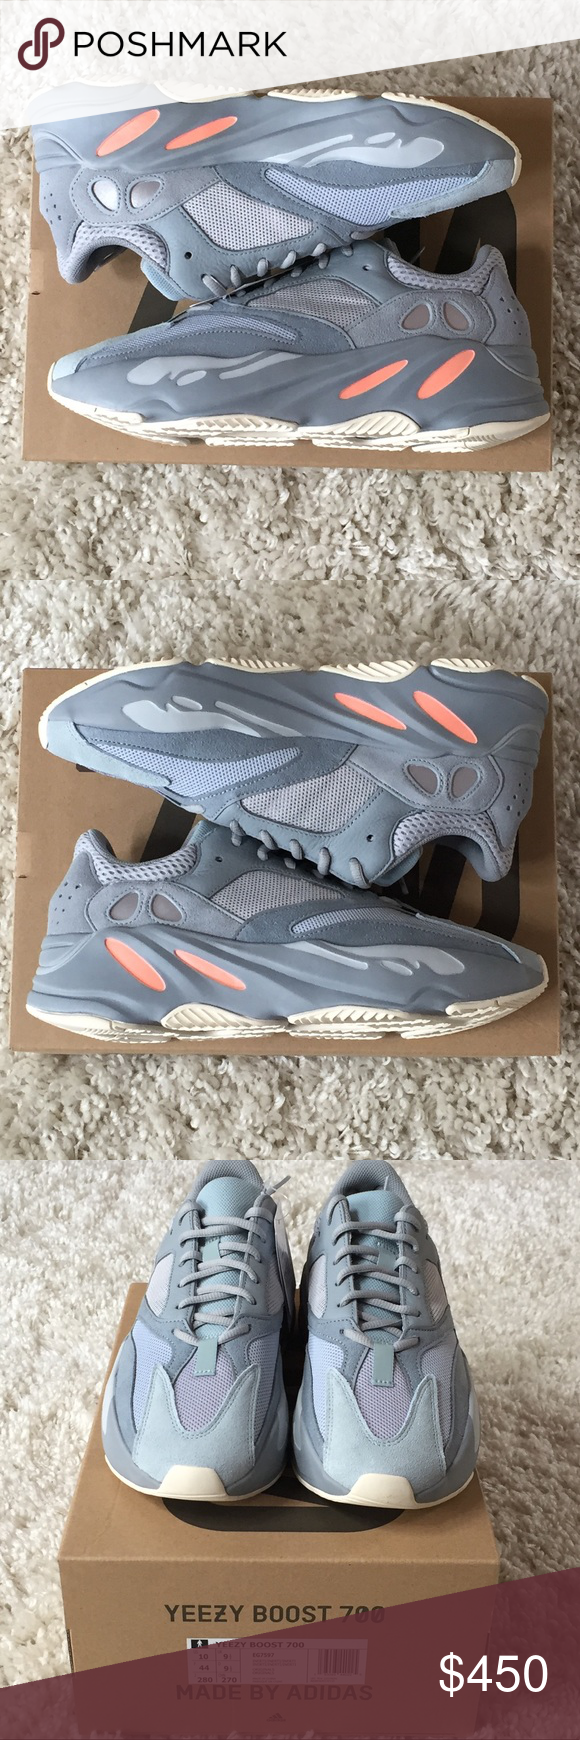 f7e9718c7cba7 Adidas Yeezy Boost 700 Inertia EG7597 Gray 10 Selling a Brand New In Box  pair of. Visit. April 2019